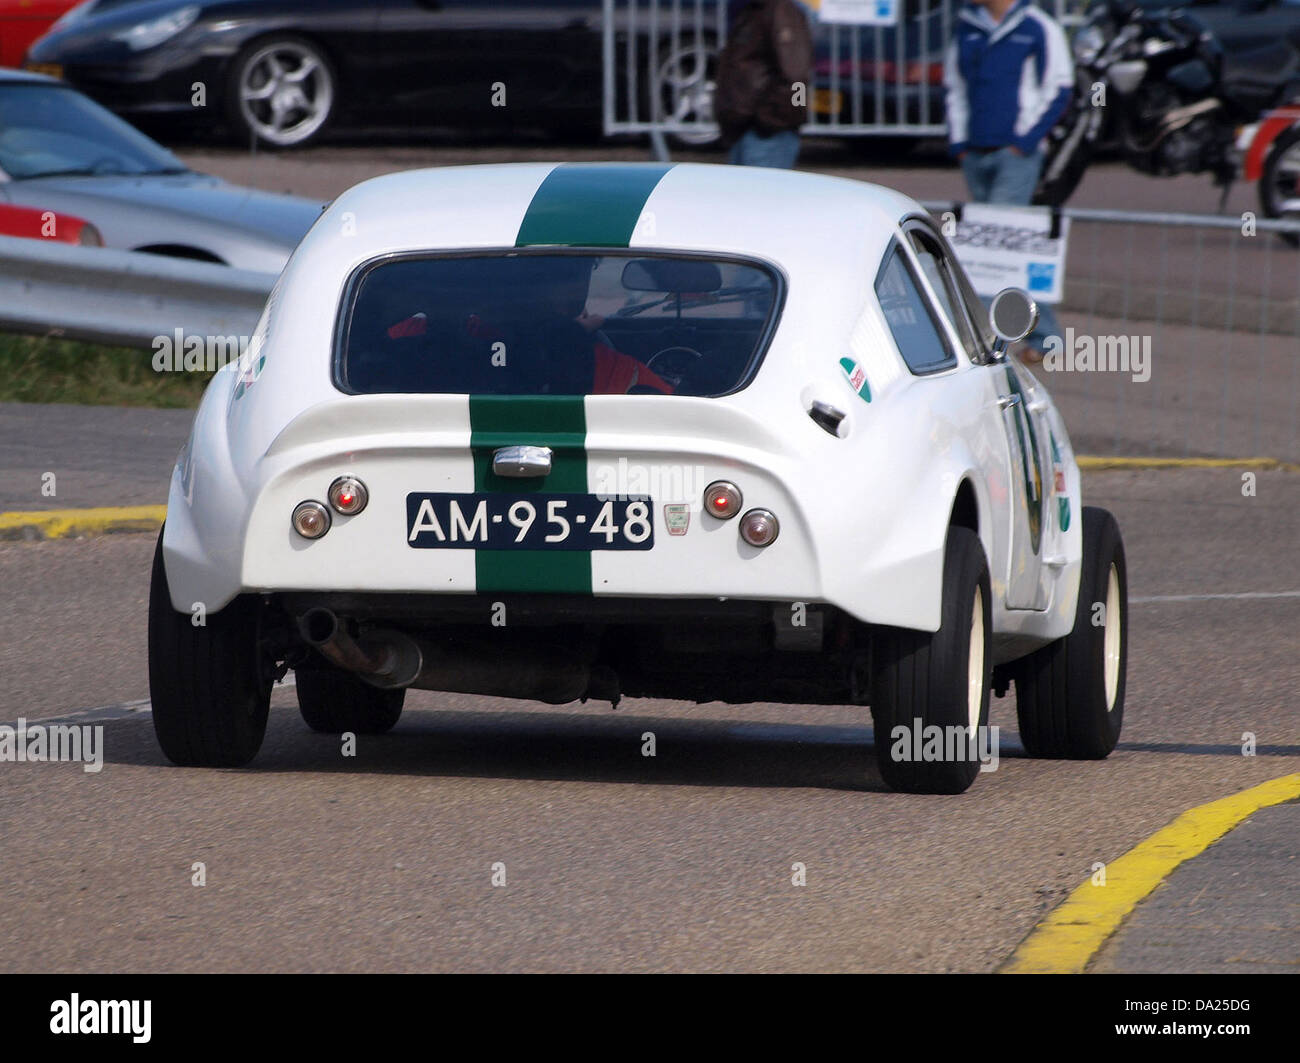 1967 MARCO S MINI MARCOS MKIII, AM-95-48 pic3 Stock Photo: 57825868 ...